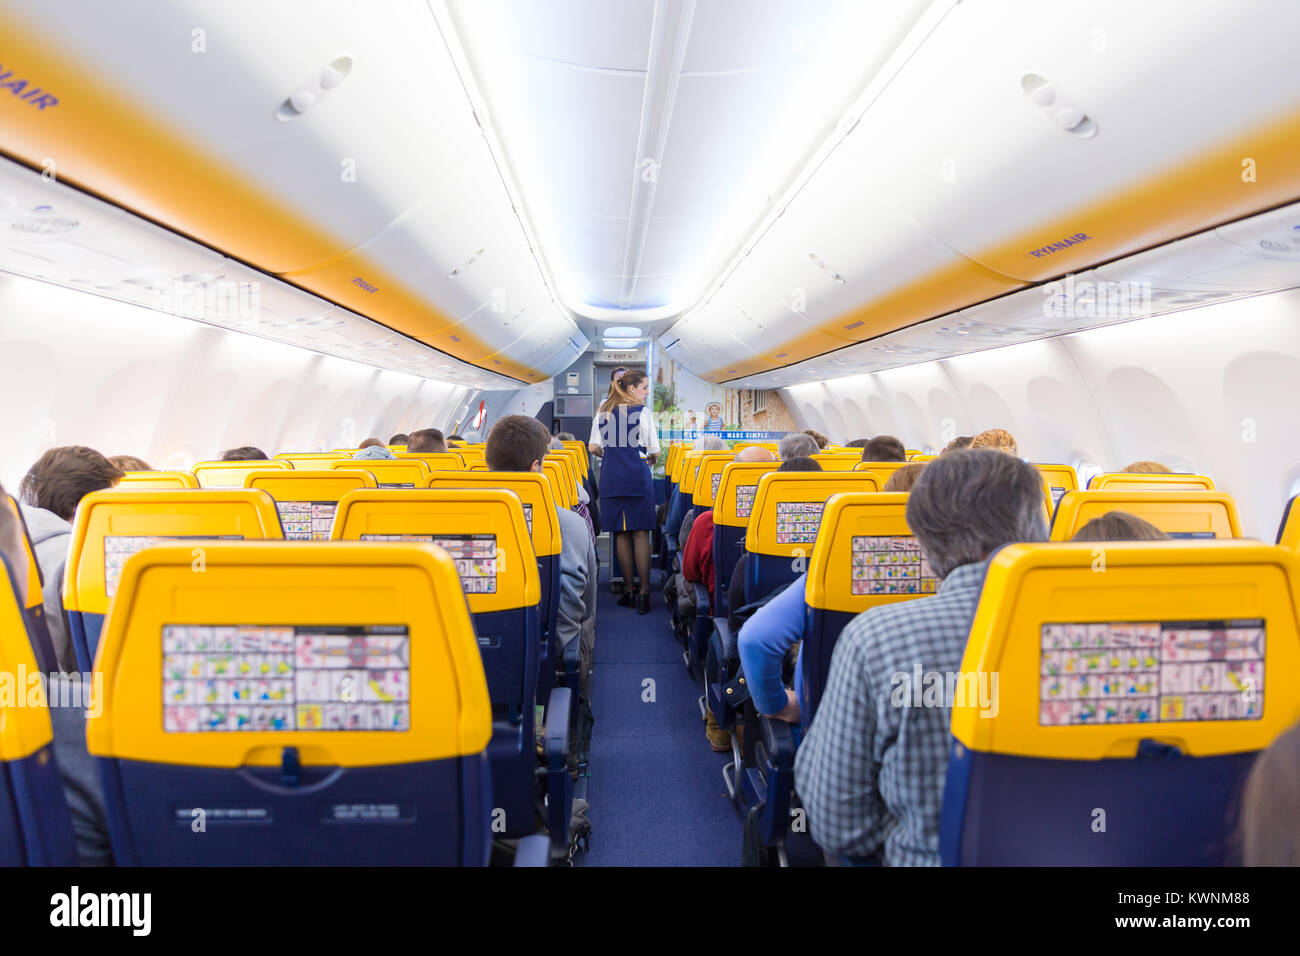 Stewardess serving passangers on Ryanair airplane flight on 14th of December, 2017 on a flight from Trieste to Valencia. - Stock Image